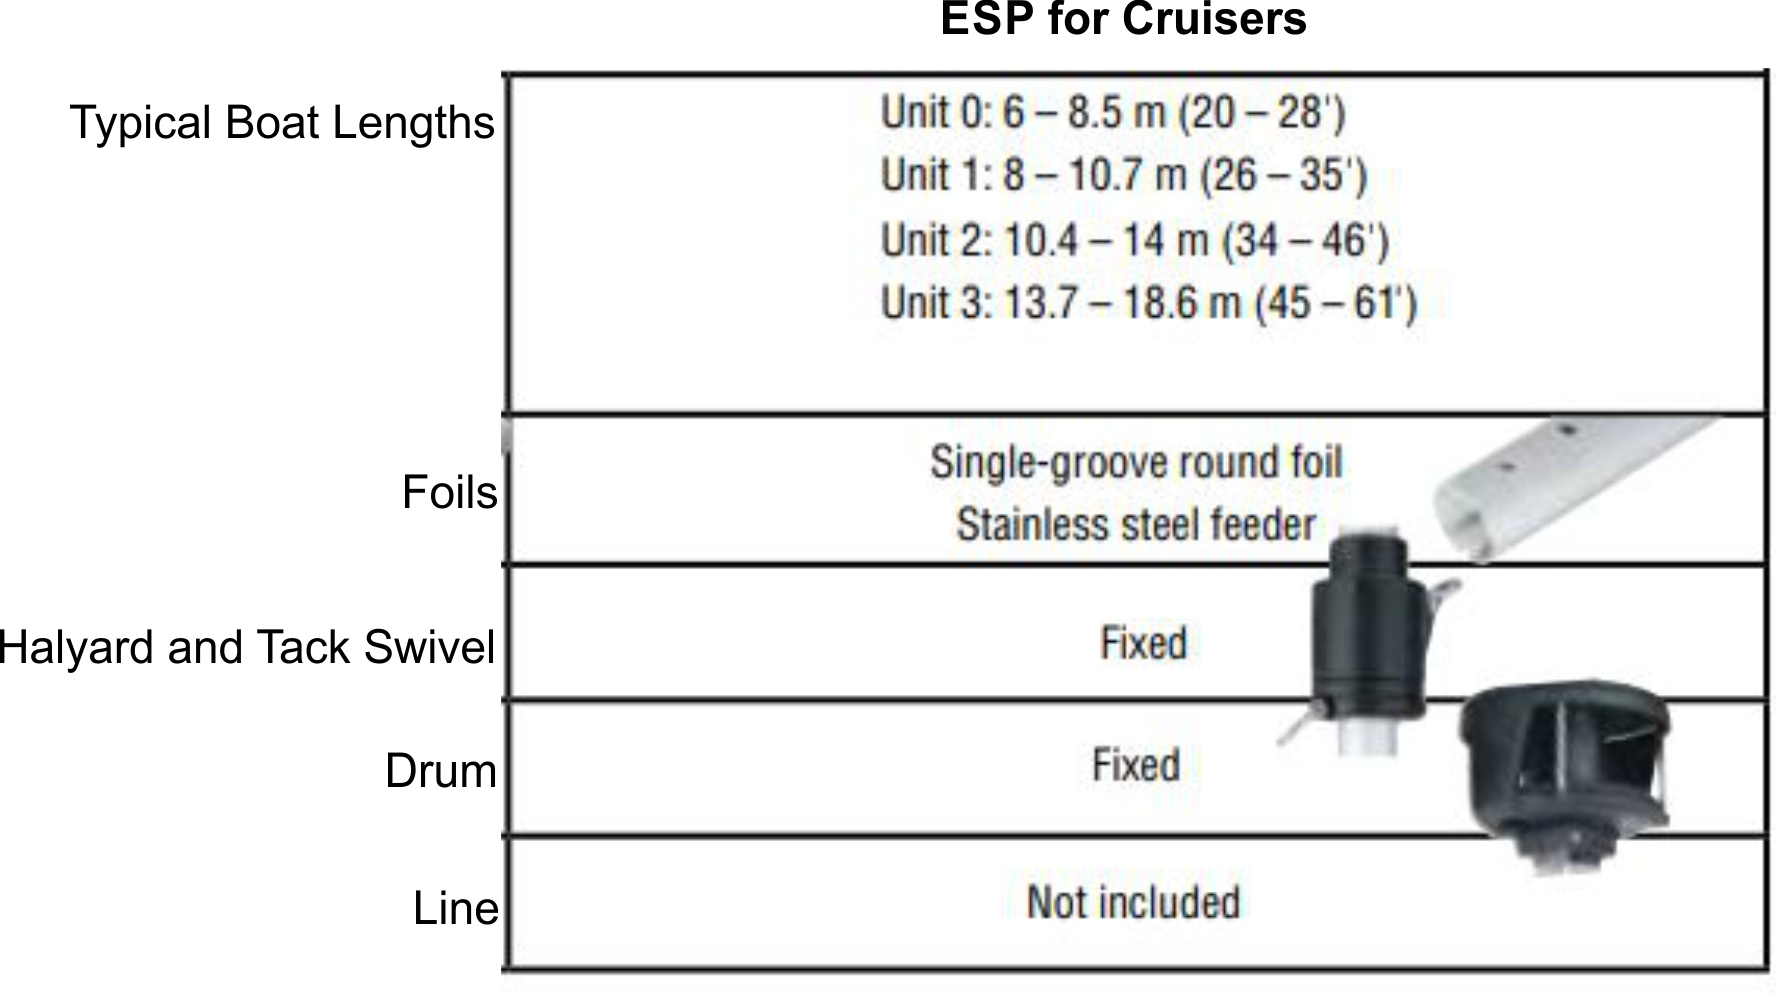 Harken ESP Selection Guide